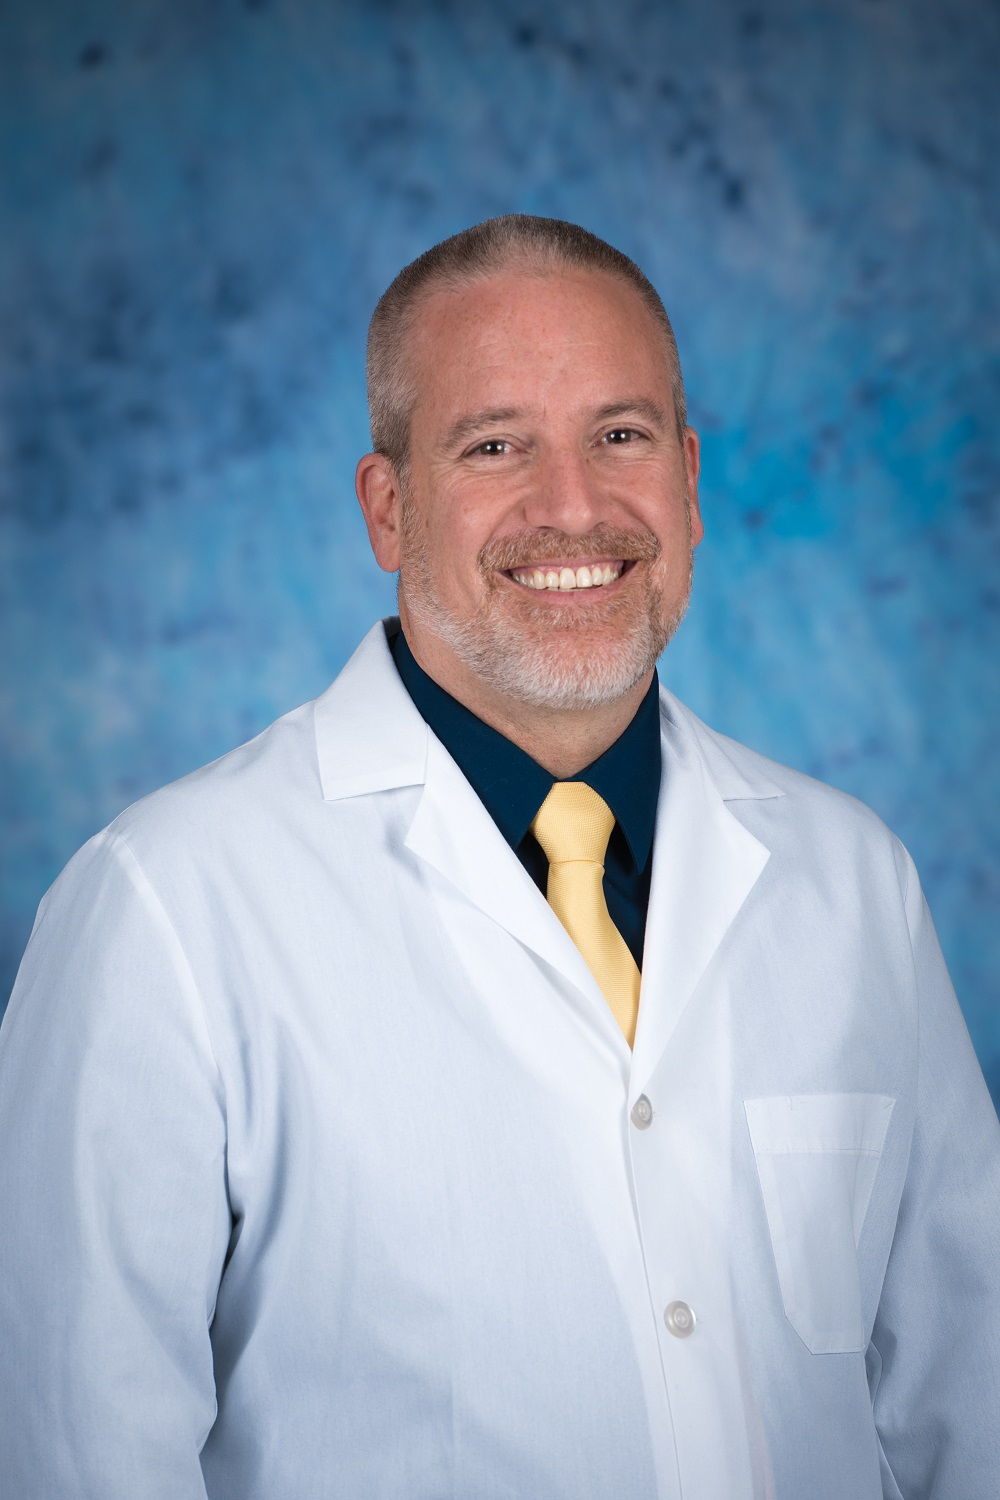 Tim Carlsen, PA-C of East Tennessee Cardiovascular Surgery Group